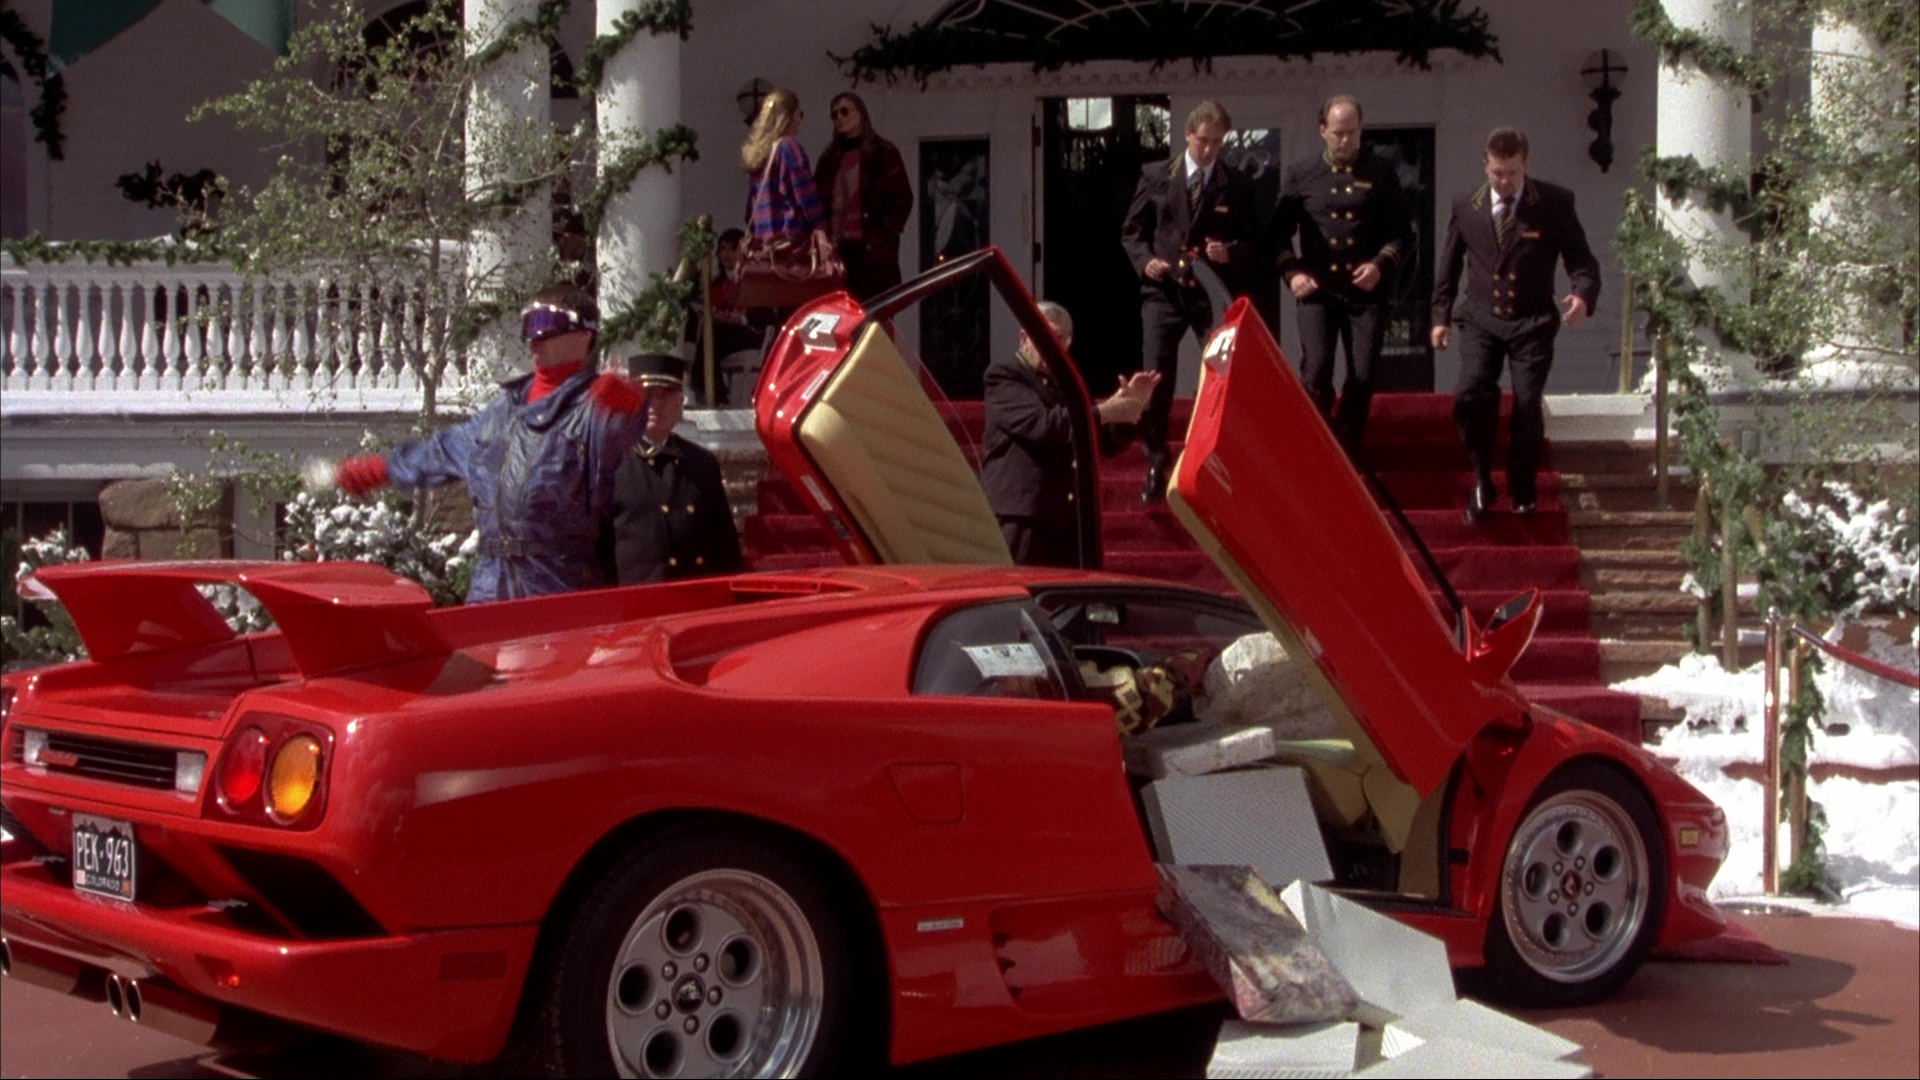 Lamborghini Diablo Red Sports Car Used By Jim Carrey And